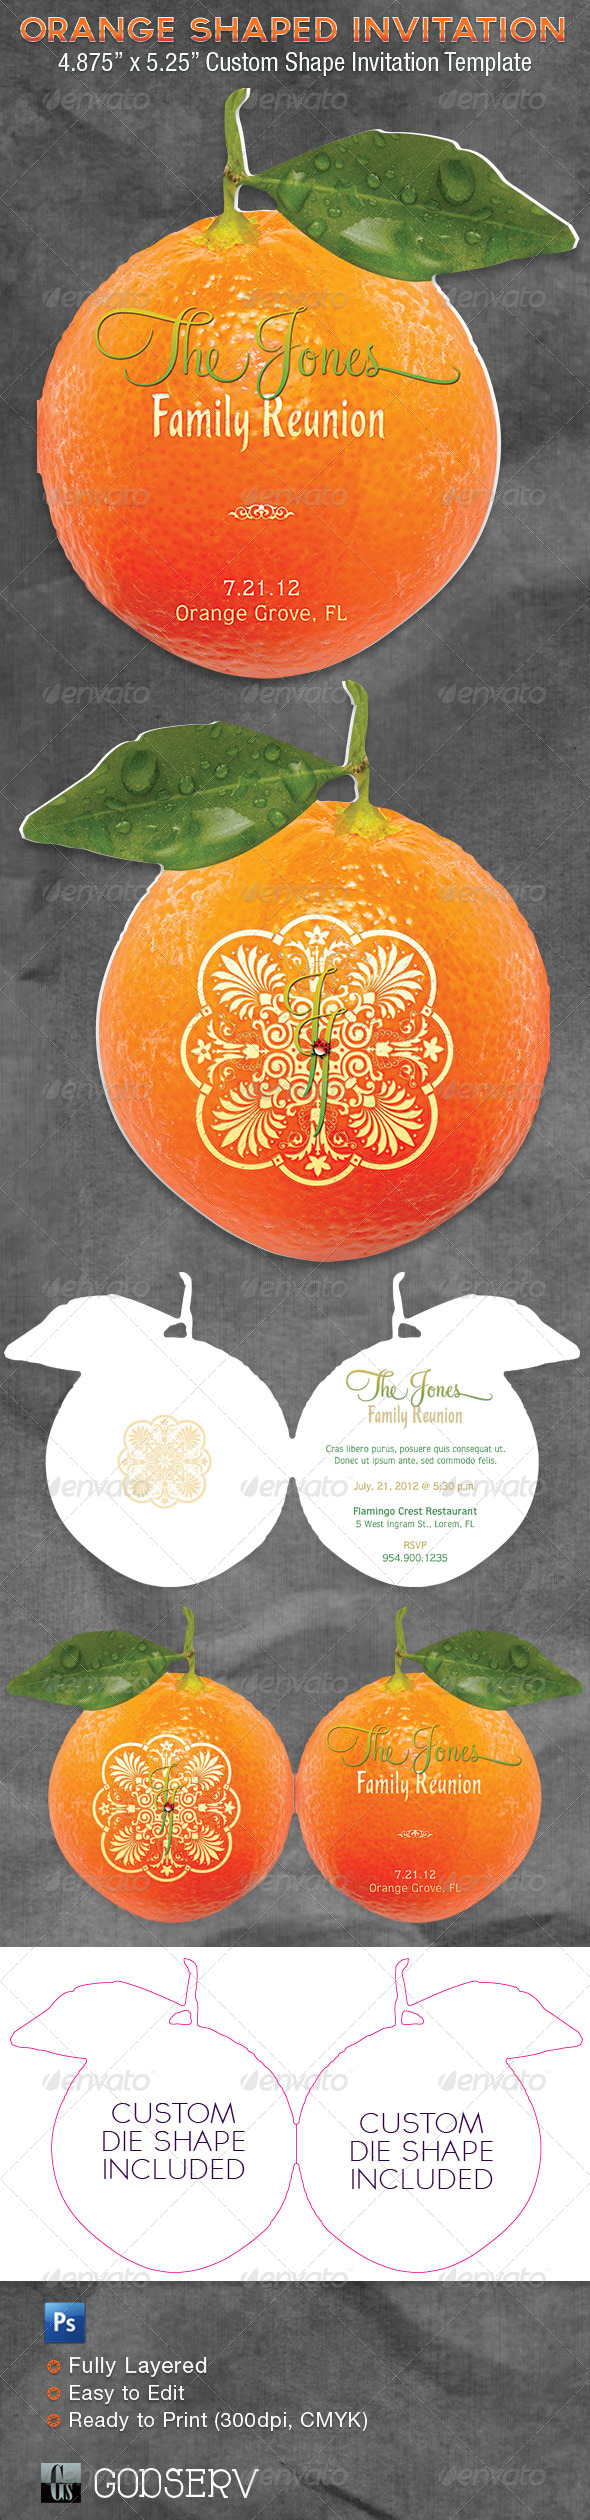 Orange Shaped Invitation Card Template - Invitations Cards & Invites